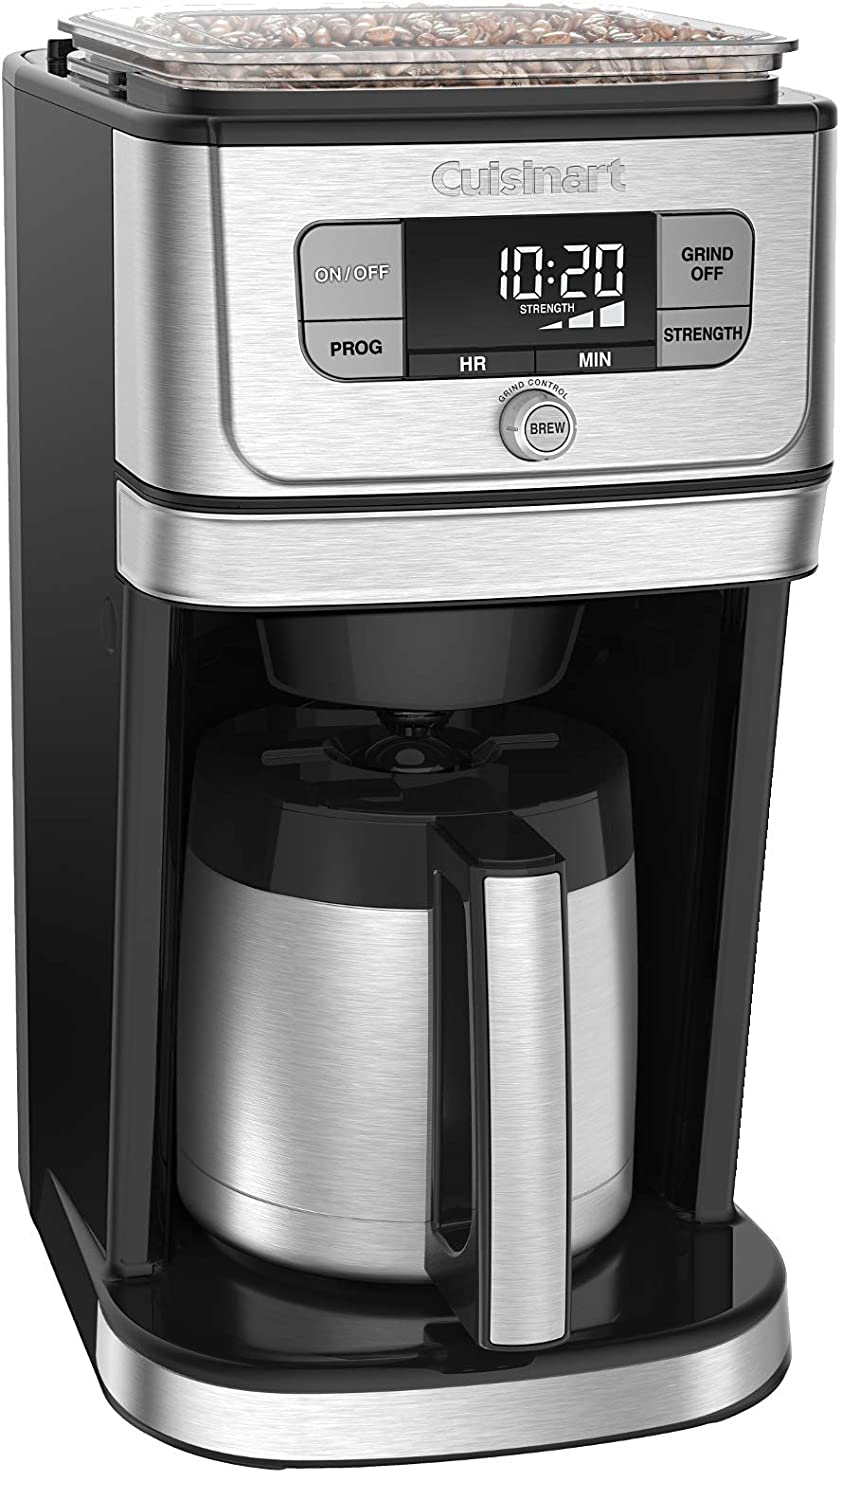 Cuisinart DGB-850 Fully Automatic Burr Grind & Brew Thermal coffeemaker 10 Cup Black